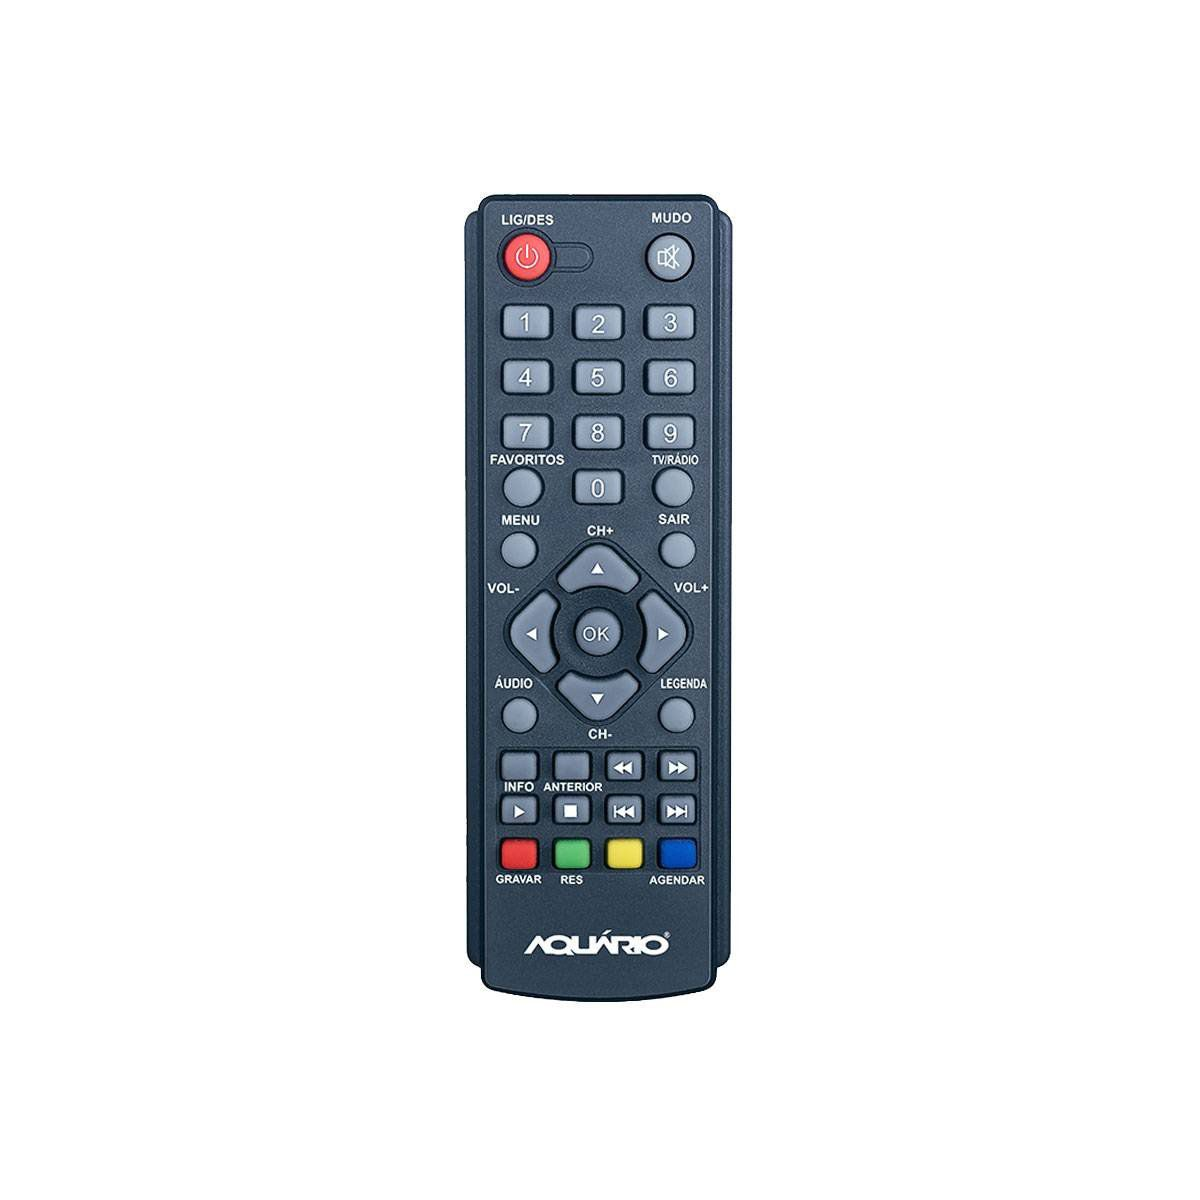 Conversor Digital Full HD p/ TV c/ USB / HDMI / Gravador - DTV 4000 Aquário